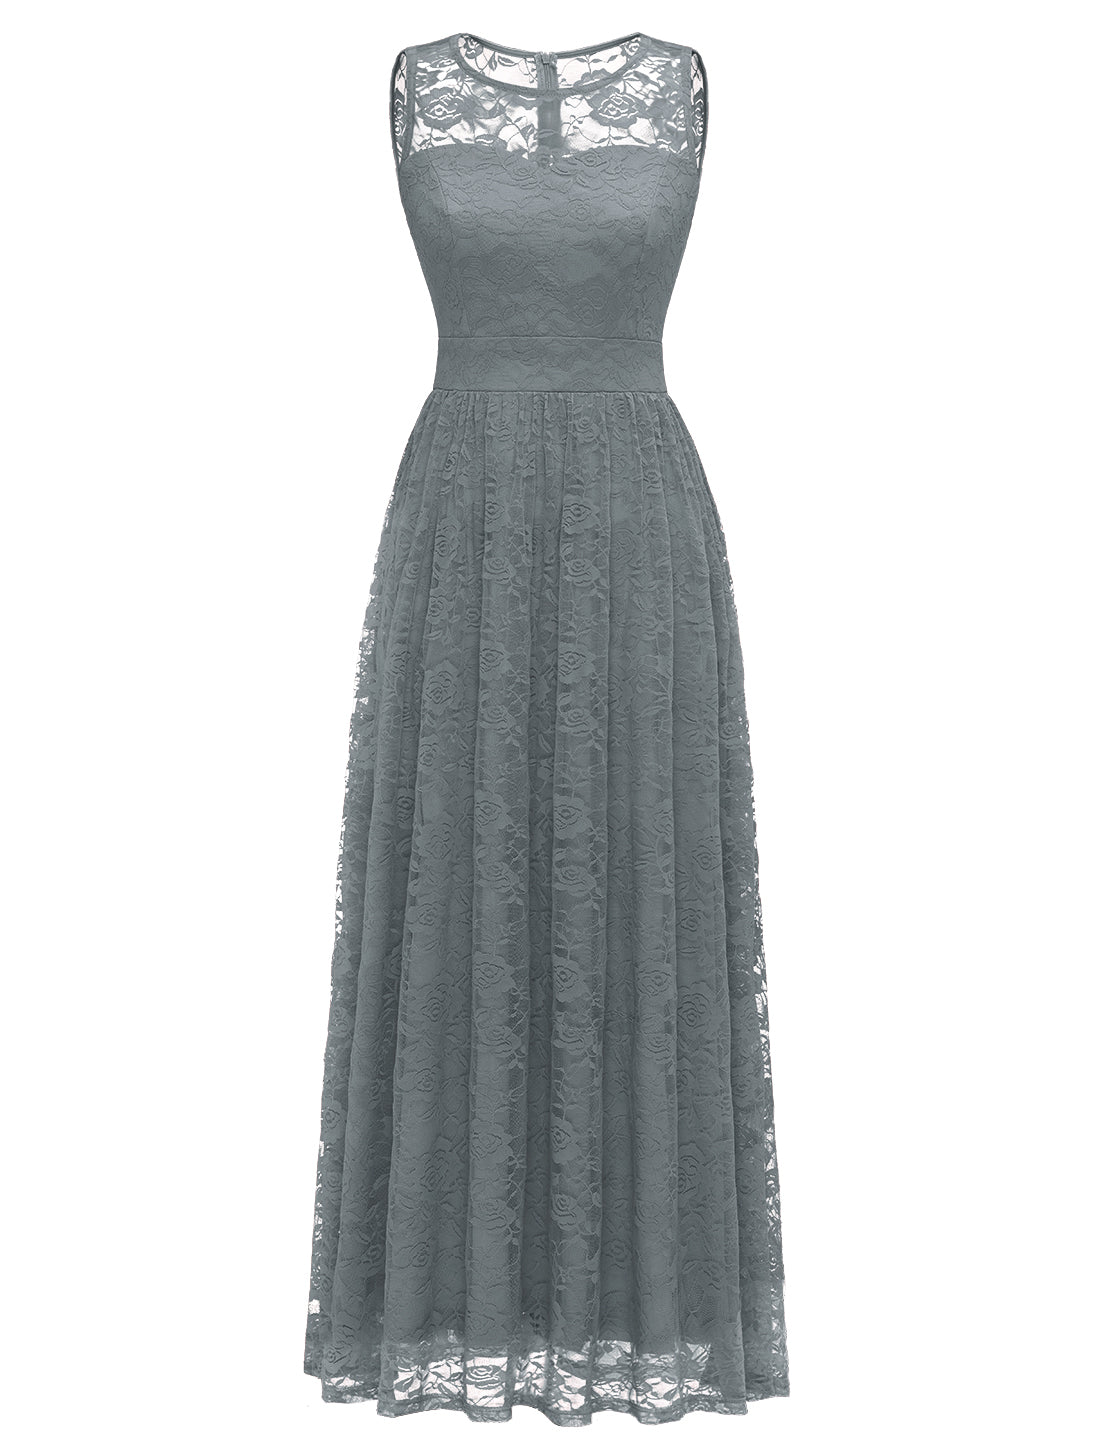 Wedtrend Women's Floral Lace Long Bridesmaid Dress Party Gown Style A